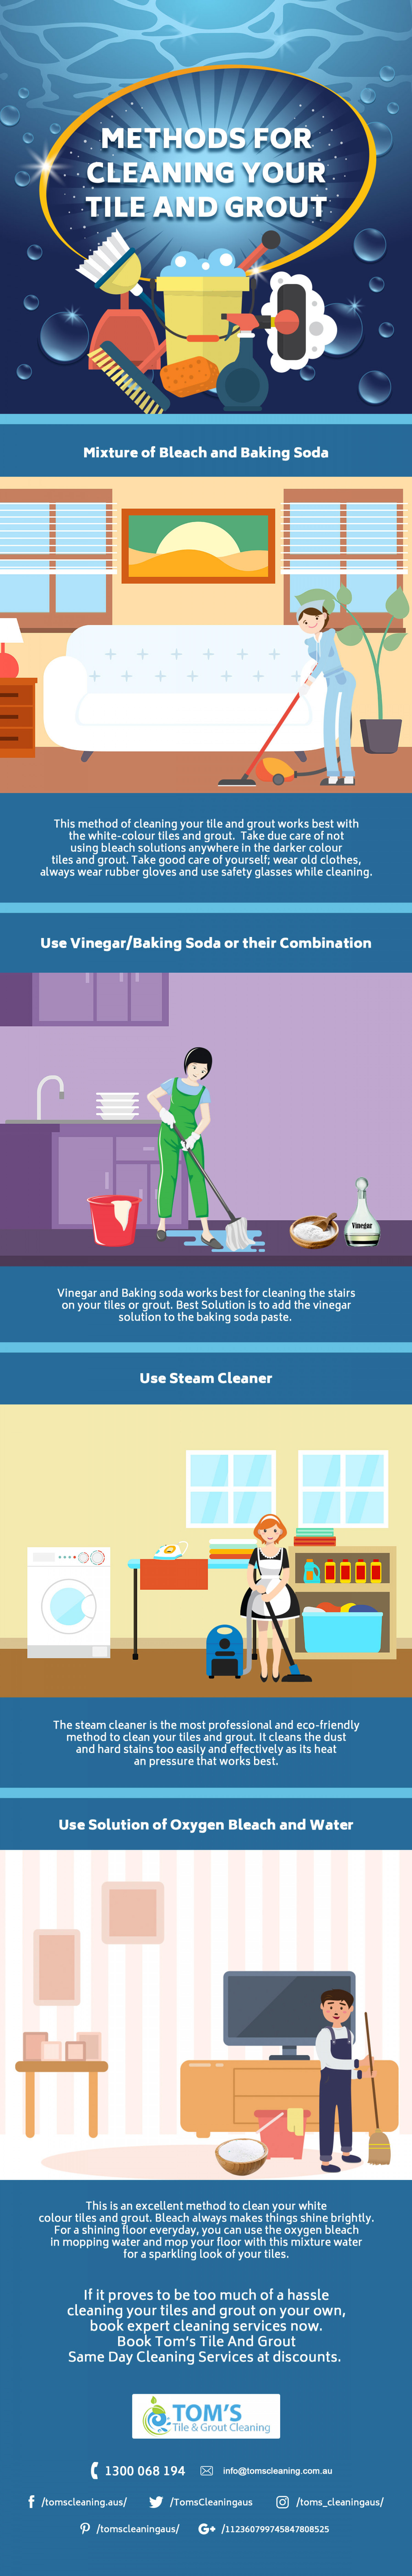 Methods For Cleaning Your Tile And Grout Infographic